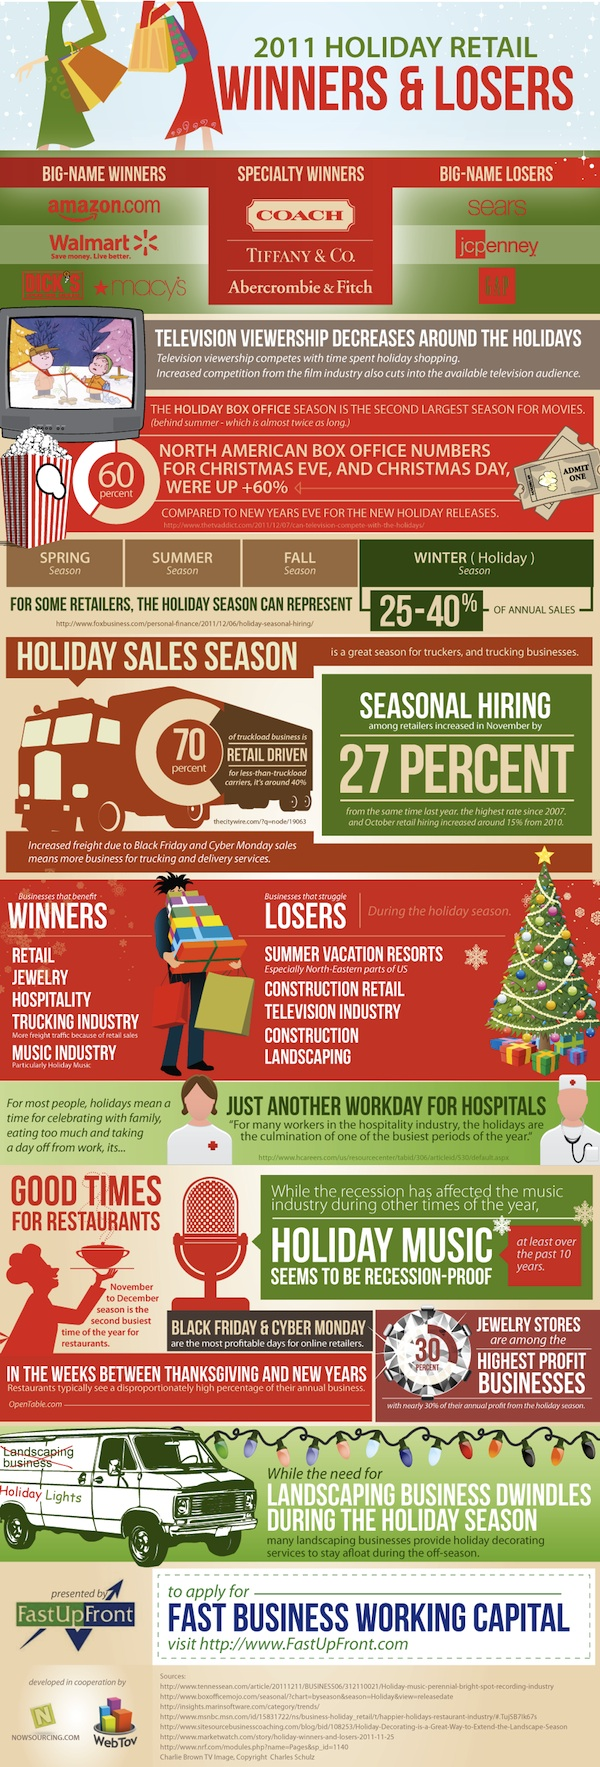 Holiday Retail Winners and Losers 1